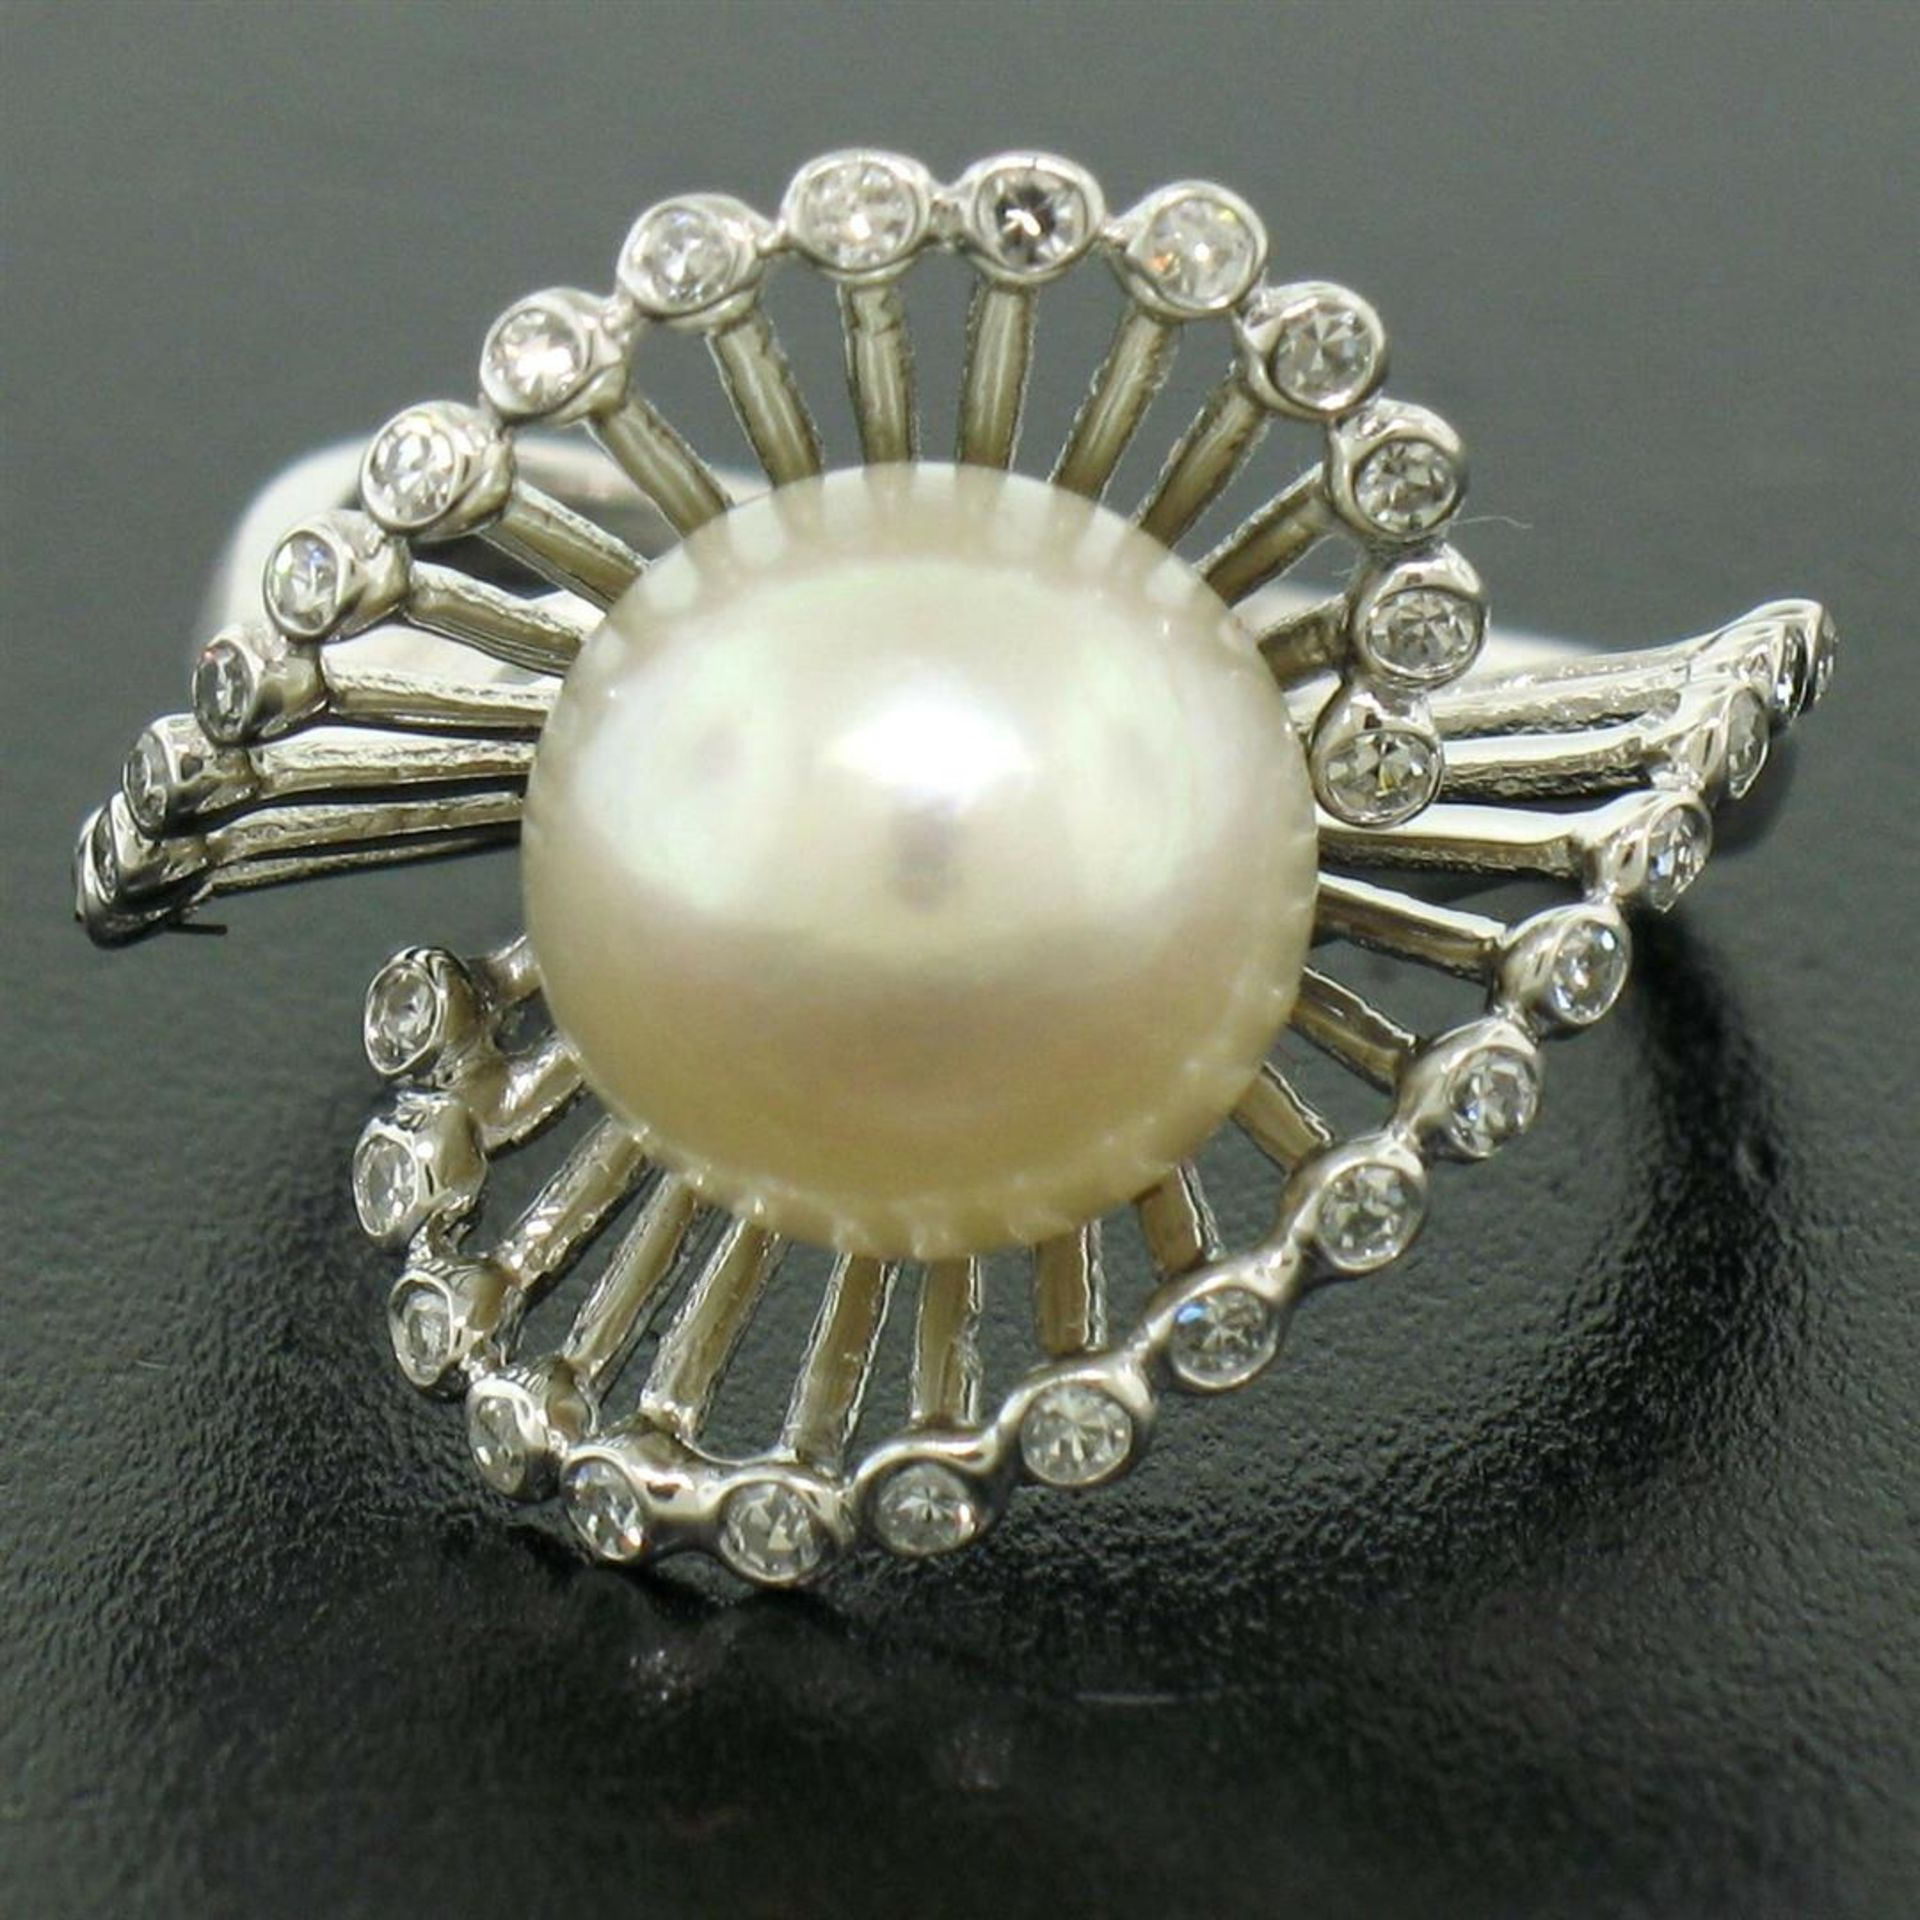 Vintage 14K White Gold 8.5mm Pearl Bezel Diamond 2 Wave Bypass Cocktail Ring - Image 3 of 8